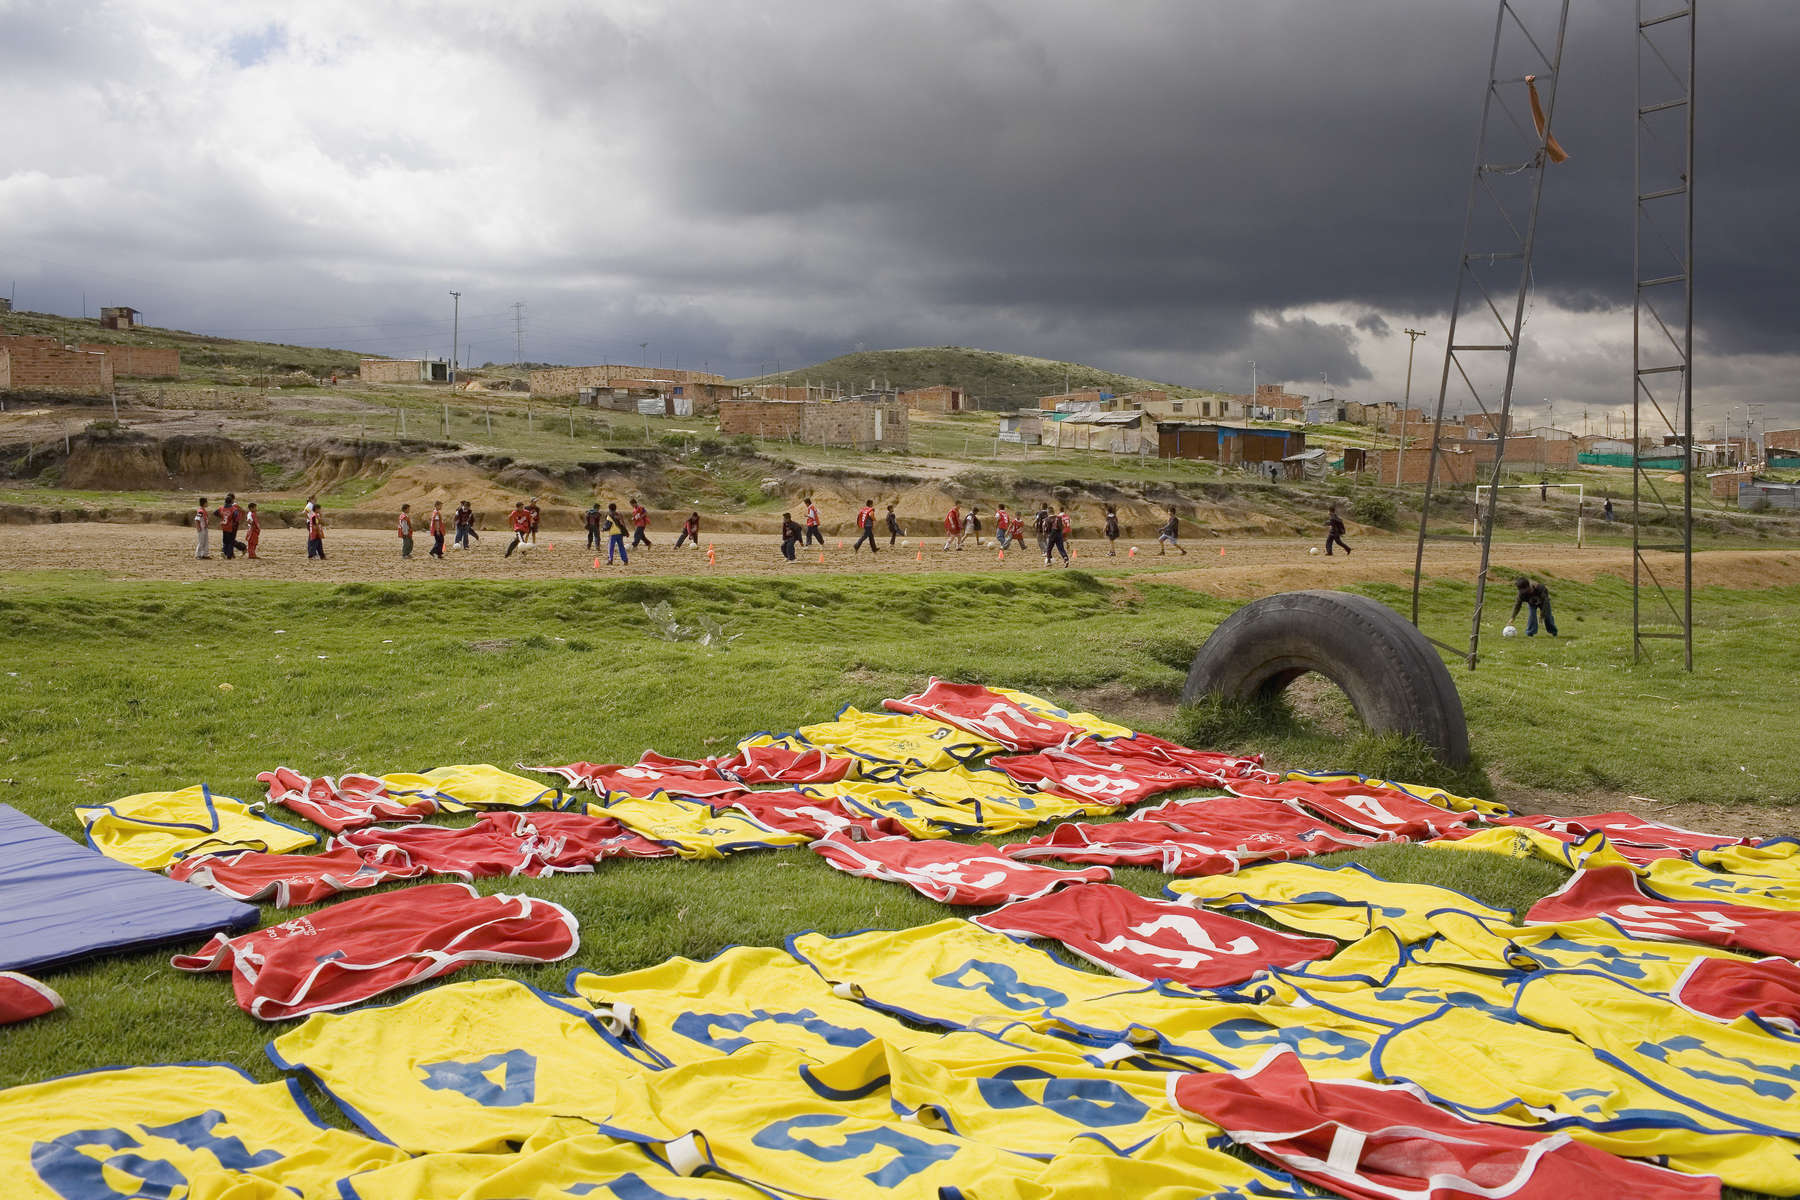 Children on the 'Goals For a Better Life' football programme train on a pitch at the foot of a slum on the outskirts of Colombian capital Bogota. Run by the 'Colombianito's' charity, it aims to use the kids passion for football to keep them in school and away from street gangs.In disaster areas, war zones and urban wastelands, football keeps humanity alive. It brings nations together and promotes unity. It encourages equality and generates pride and self-belief. It has the power to heal and to help, to motivate, to give freedom to dreams and empower a generation. There are millions of people playing the game or helping it to flourish who find that football brings a positive dimension to their lives.Away from the billionaire owned clubs with it's multi-million dollar players, Football's Hidden Story is a series of emotive human interest photographs showing the positive impact football has had at grassroot level on individuals and communities all around the world.